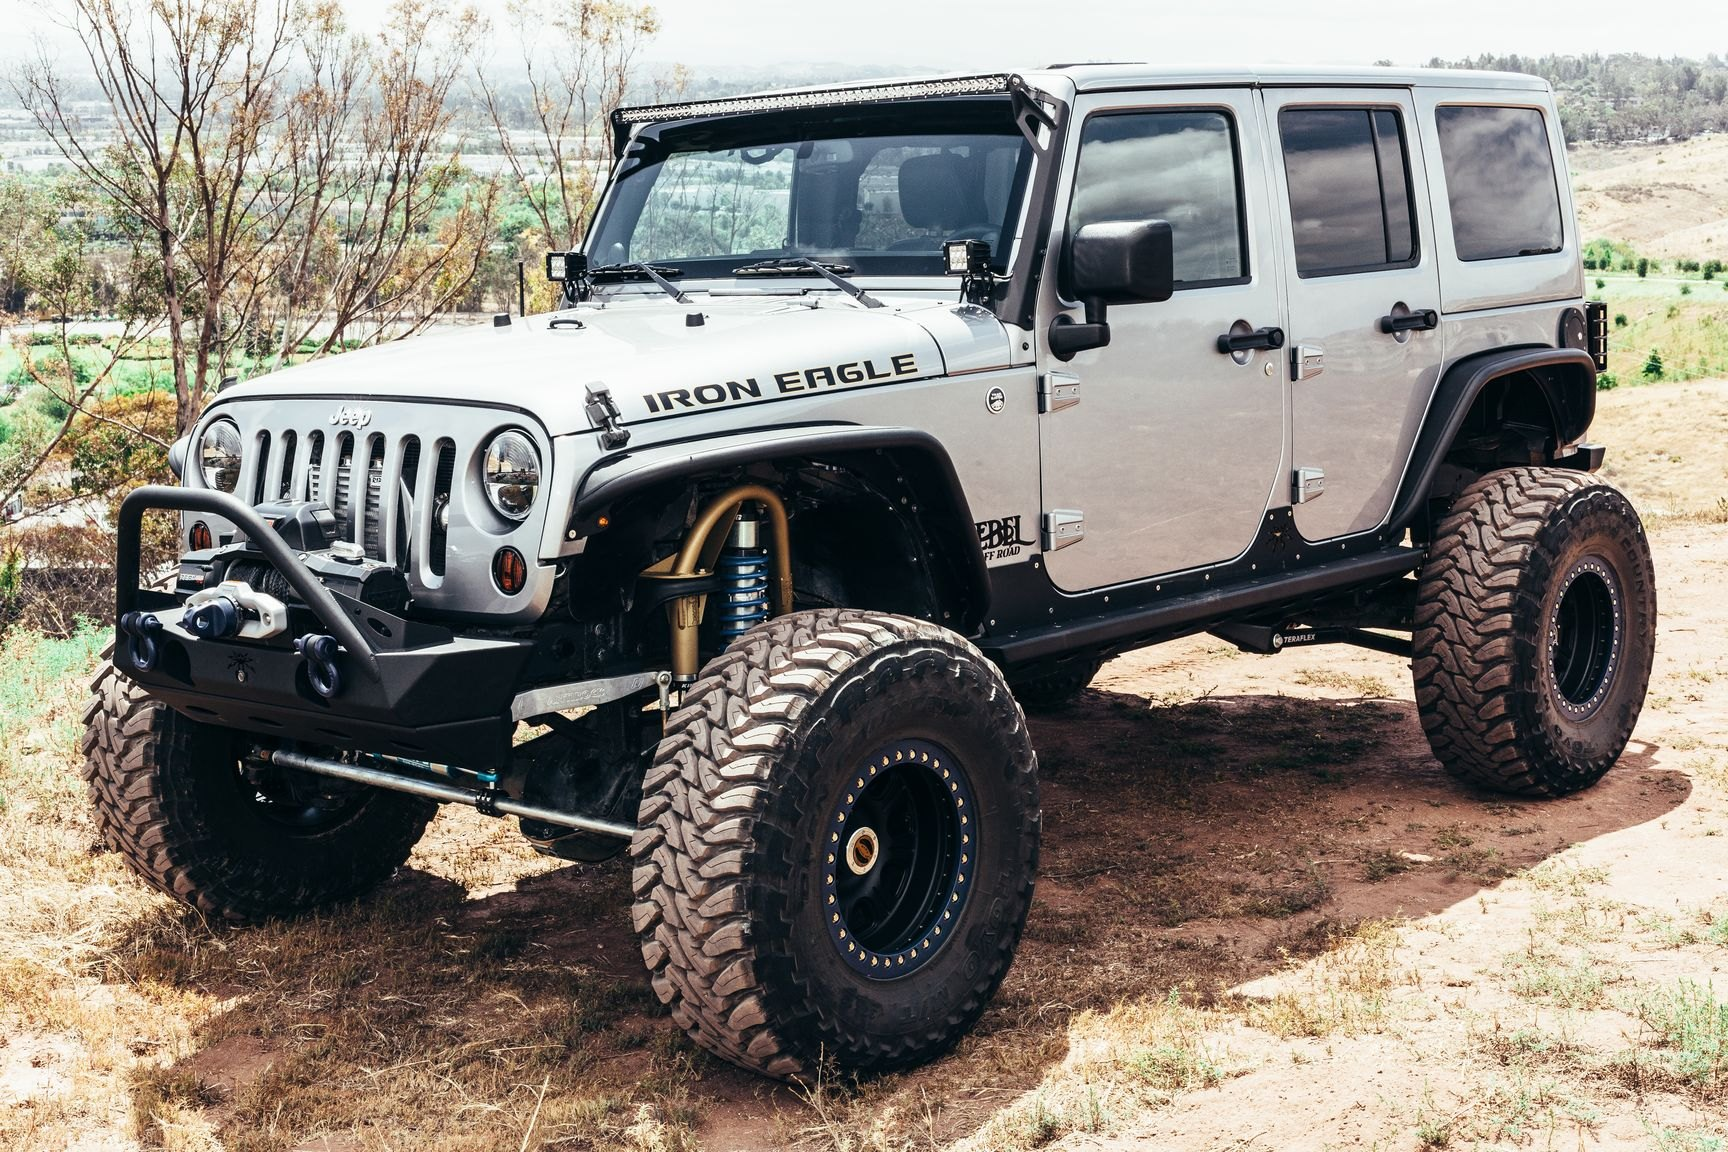 Iron Eagle Build Jeep Wrangler Customized By Rebel Off Road Carid